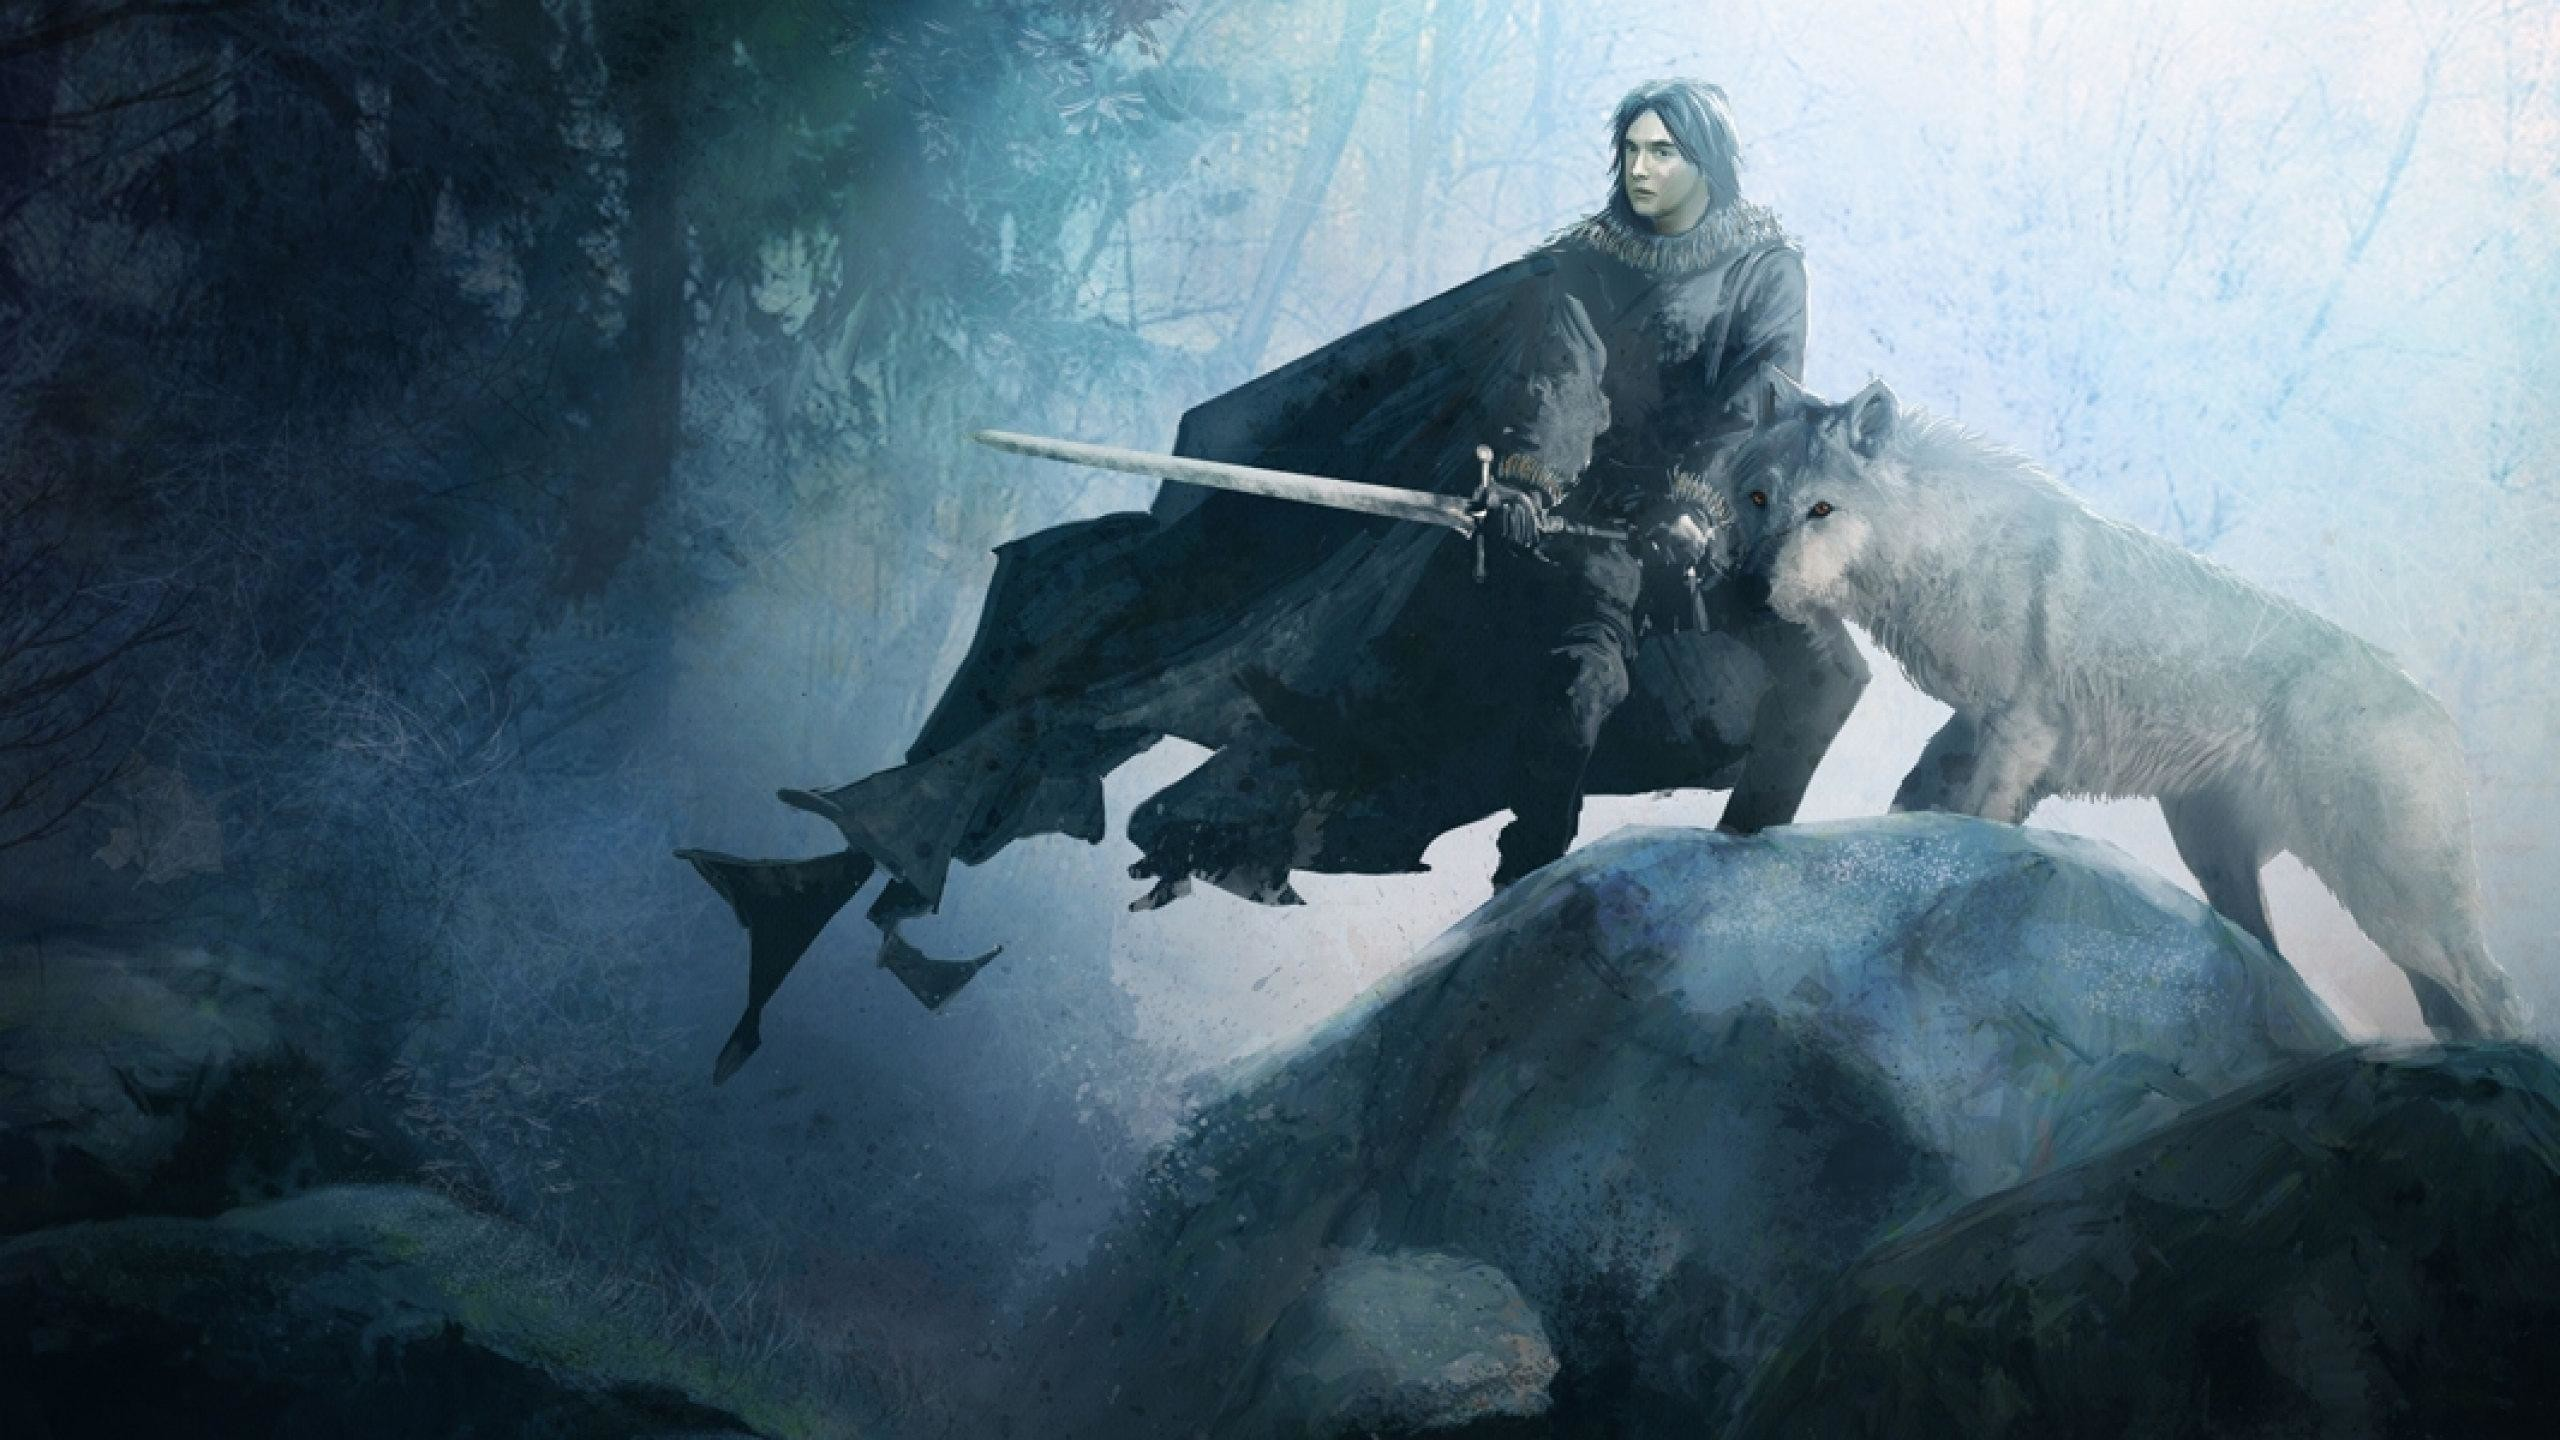 Game of Thrones Jon Snow – Wallpaper, High Definition, High Quality .